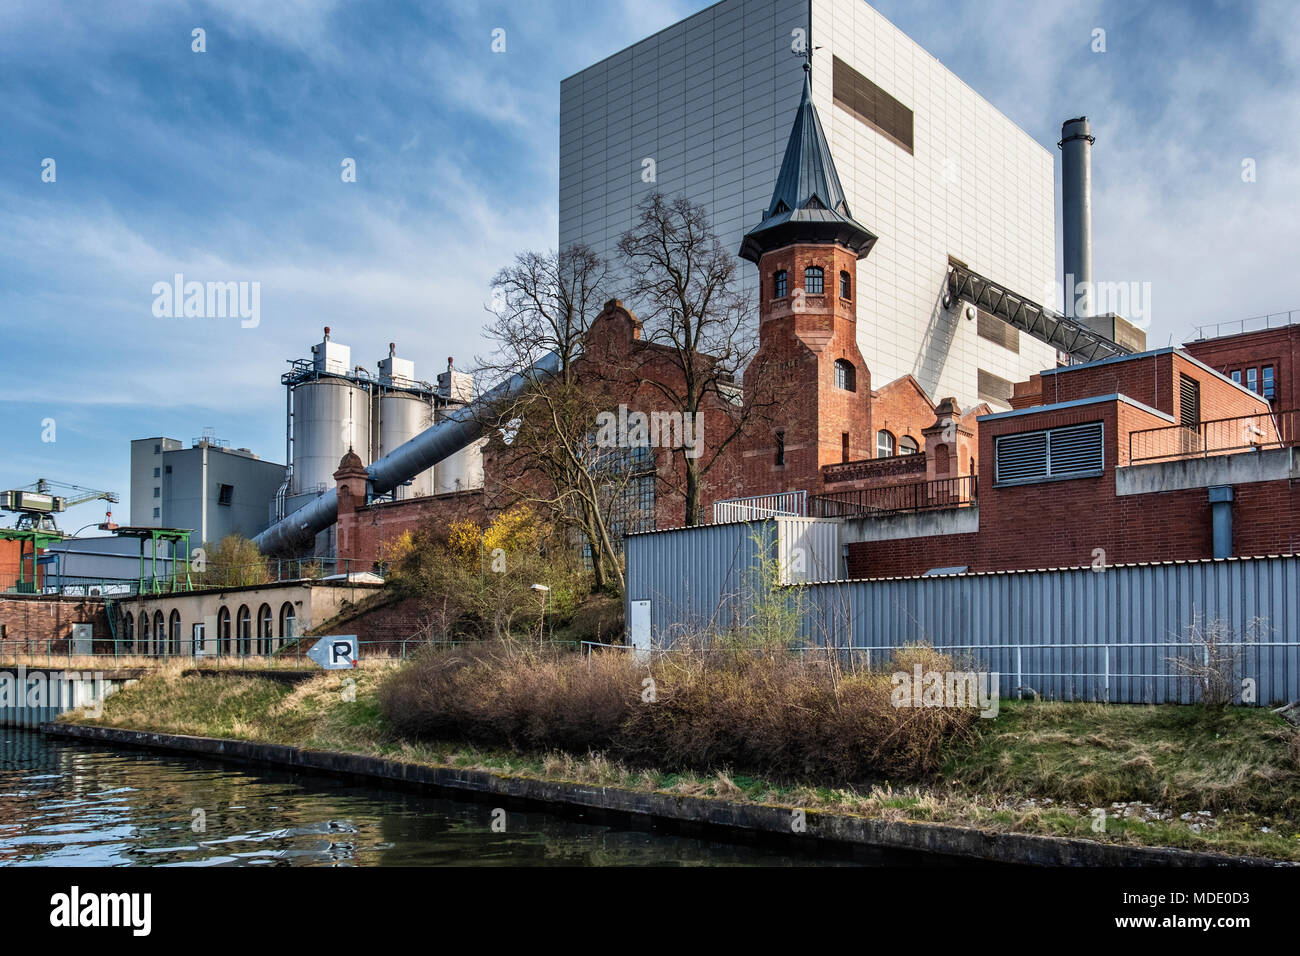 Berlin-Moabit, Vattenfall power station uses fossil Fuel for energy generation, Industrial architecture. New and old buildings The Moabit cogeneration - Stock Image